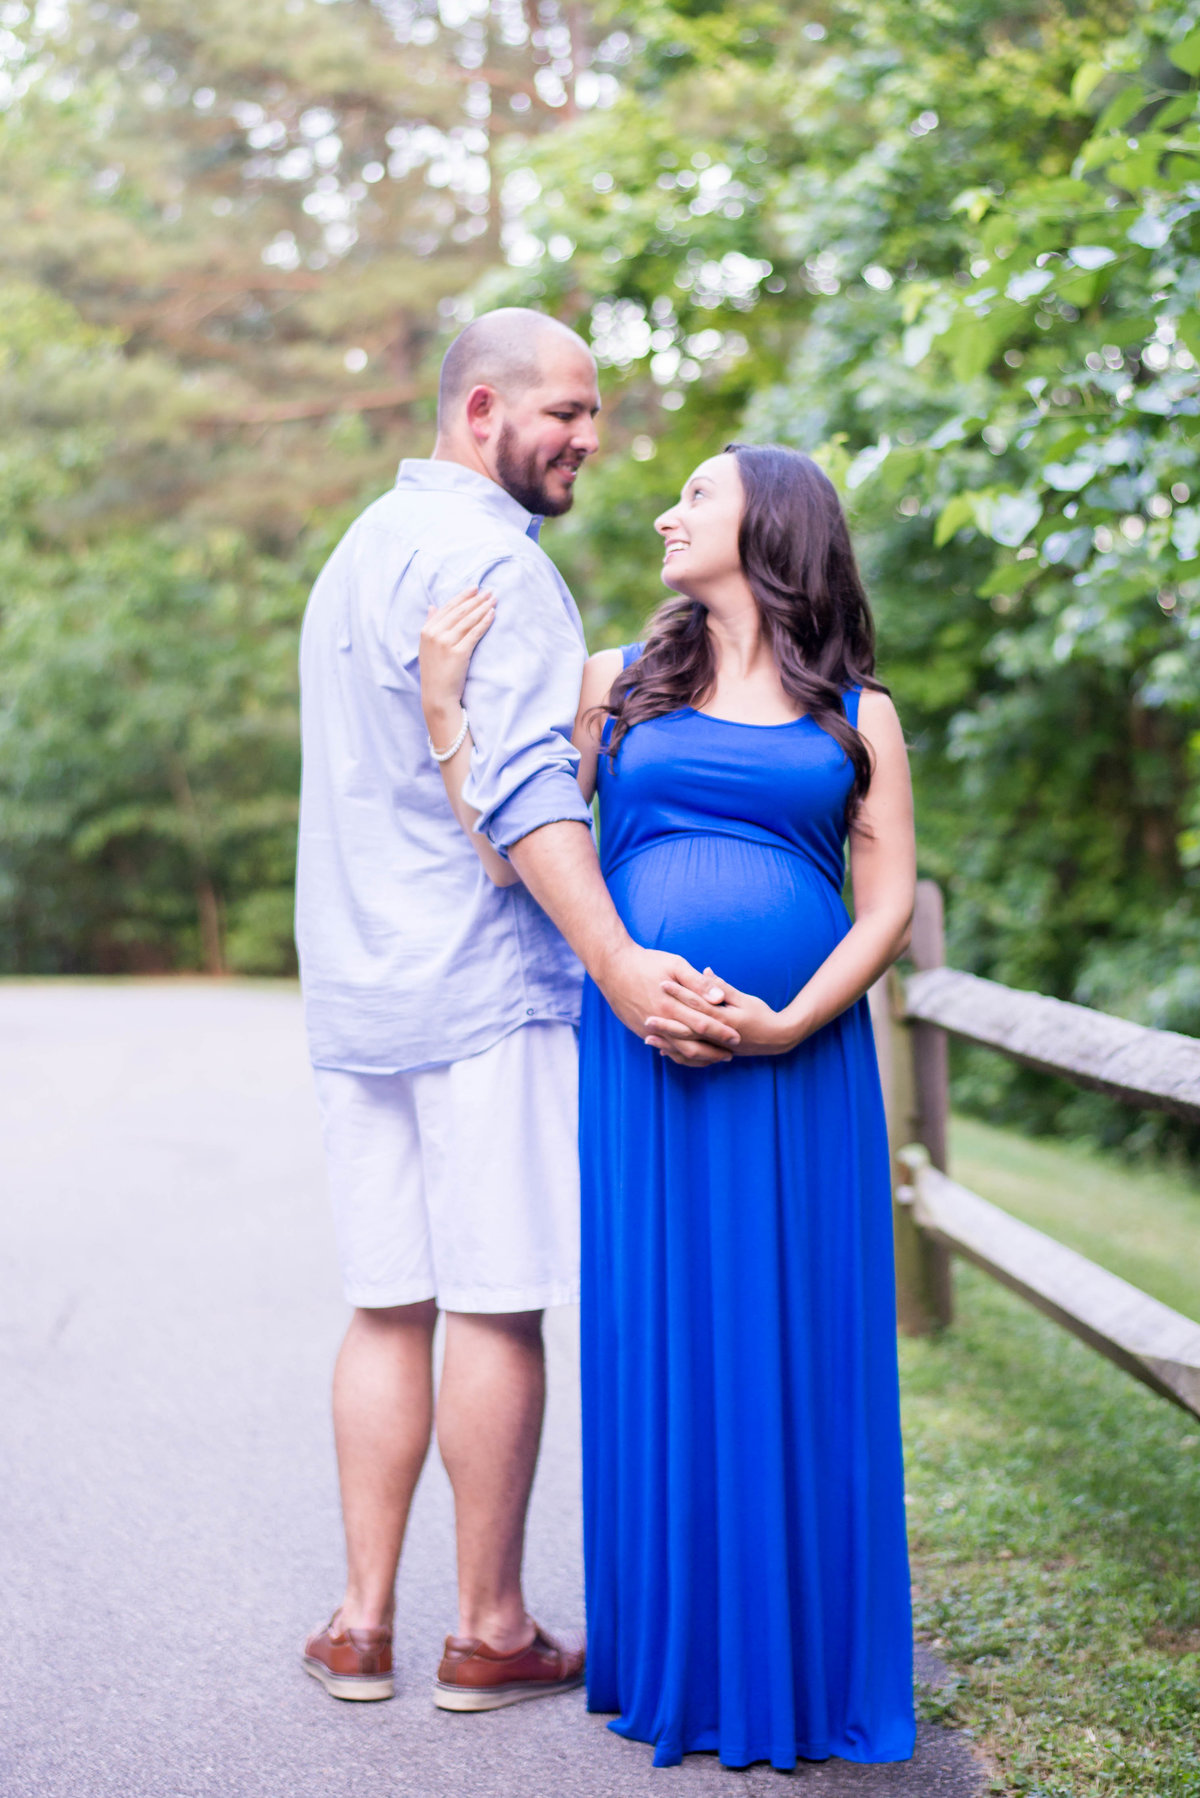 052018_Williams maternity-39